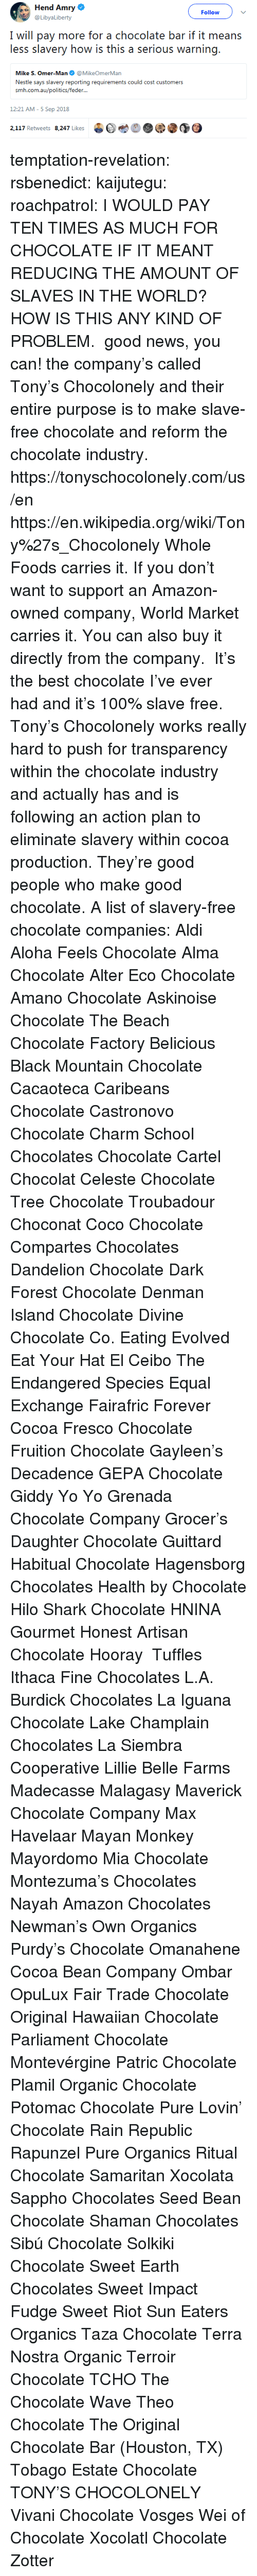 Amazon, Anaconda, and CoCo: Hend Amry  @LibyaLiberty  Follow  I will pay more for a chocolate bar if it means  less slavery how is this a serious warning.  Mike S. Omer-Man@MikeOmerMan  Nestle says slavery reporting requirements could cost customers  srmi.exiiauafoliiicxi/icxlkir...  12:21 AM-5 Sep 2018  2,117 Retweets 8.247 Likes  bet  @③ temptation-revelation:  rsbenedict:  kaijutegu:  roachpatrol: I WOULD PAY TEN TIMES AS MUCH FOR CHOCOLATE IF IT MEANT REDUCING THE AMOUNT OF SLAVES IN THE WORLD? HOW IS THIS ANY KIND OF PROBLEM.  good news, you can! the company's called Tony's Chocolonely and their entire purpose is to make slave-free chocolate and reform the chocolate industry. https://tonyschocolonely.com/us/en https://en.wikipedia.org/wiki/Tony%27s_Chocolonely Whole Foods carries it. If you don't want to support an Amazon-owned company, World Market carries it. You can also buy it directly from the company.  It's the best chocolate I've ever had and it's 100% slave free. Tony's Chocolonely works really hard to push for transparency within the chocolate industry and actually has and is following an action plan to eliminate slavery within cocoa production. They're good people who make good chocolate.  A list of slavery-free chocolate companies:  Aldi  Aloha Feels Chocolate  Alma Chocolate  Alter Eco Chocolate  Amano Chocolate  Askinoise Chocolate  The Beach Chocolate Factory  Belicious  Black Mountain Chocolate  Cacaoteca  Caribeans Chocolate  Castronovo Chocolate  Charm School Chocolates  Chocolate Cartel  Chocolat Celeste  Chocolate Tree  Chocolate Troubadour  Choconat  Coco Chocolate  Compartes Chocolates  Dandelion Chocolate  Dark Forest Chocolate  Denman Island Chocolate  Divine Chocolate Co.  Eating Evolved  Eat Your Hat  El Ceibo  The Endangered Species  Equal Exchange  Fairafric  Forever Cocoa  Fresco Chocolate  Fruition Chocolate  Gayleen's Decadence  GEPA Chocolate  Giddy Yo Yo  Grenada Chocolate Company  Grocer's Daughter Chocolate  Guittard  Habitual Chocolate  Hagensborg Chocolates  Health by Chocolate  Hilo Shark Chocolate  HNINA Gourmet  Honest Artisan Chocolate  Hooray  Tuffles Ithaca Fine Chocolates  L.A. Burdick Chocolates  La Iguana Chocolate  Lake Champlain Chocolates  La Siembra Cooperative  Lillie Belle Farms  Madecasse  Malagasy  Maverick Chocolate Company Max Havelaar  Mayan Monkey  Mayordomo  Mia Chocolate  Montezuma's Chocolates  Nayah Amazon Chocolates  Newman's Own Organics  Purdy's Chocolate  Omanahene Cocoa Bean Company  Ombar  OpuLux Fair Trade Chocolate  Original Hawaiian Chocolate  Parliament Chocolate  Montevérgine  Patric Chocolate  Plamil Organic Chocolate  Potomac Chocolate  Pure Lovin' Chocolate  Rain Republic  Rapunzel Pure Organics  Ritual Chocolate  Samaritan Xocolata  Sappho Chocolates  Seed  Bean Chocolate  Shaman Chocolates  Sibú Chocolate  Solkiki Chocolate  Sweet Earth Chocolates  Sweet Impact Fudge  Sweet Riot  Sun Eaters Organics  Taza Chocolate  Terra Nostra Organic  Terroir Chocolate  TCHO  The Chocolate Wave  Theo Chocolate  The Original Chocolate Bar (Houston, TX)  Tobago Estate Chocolate  TONY'S CHOCOLONELY  Vivani Chocolate  Vosges  Wei of Chocolate  Xocolatl Chocolate Zotter